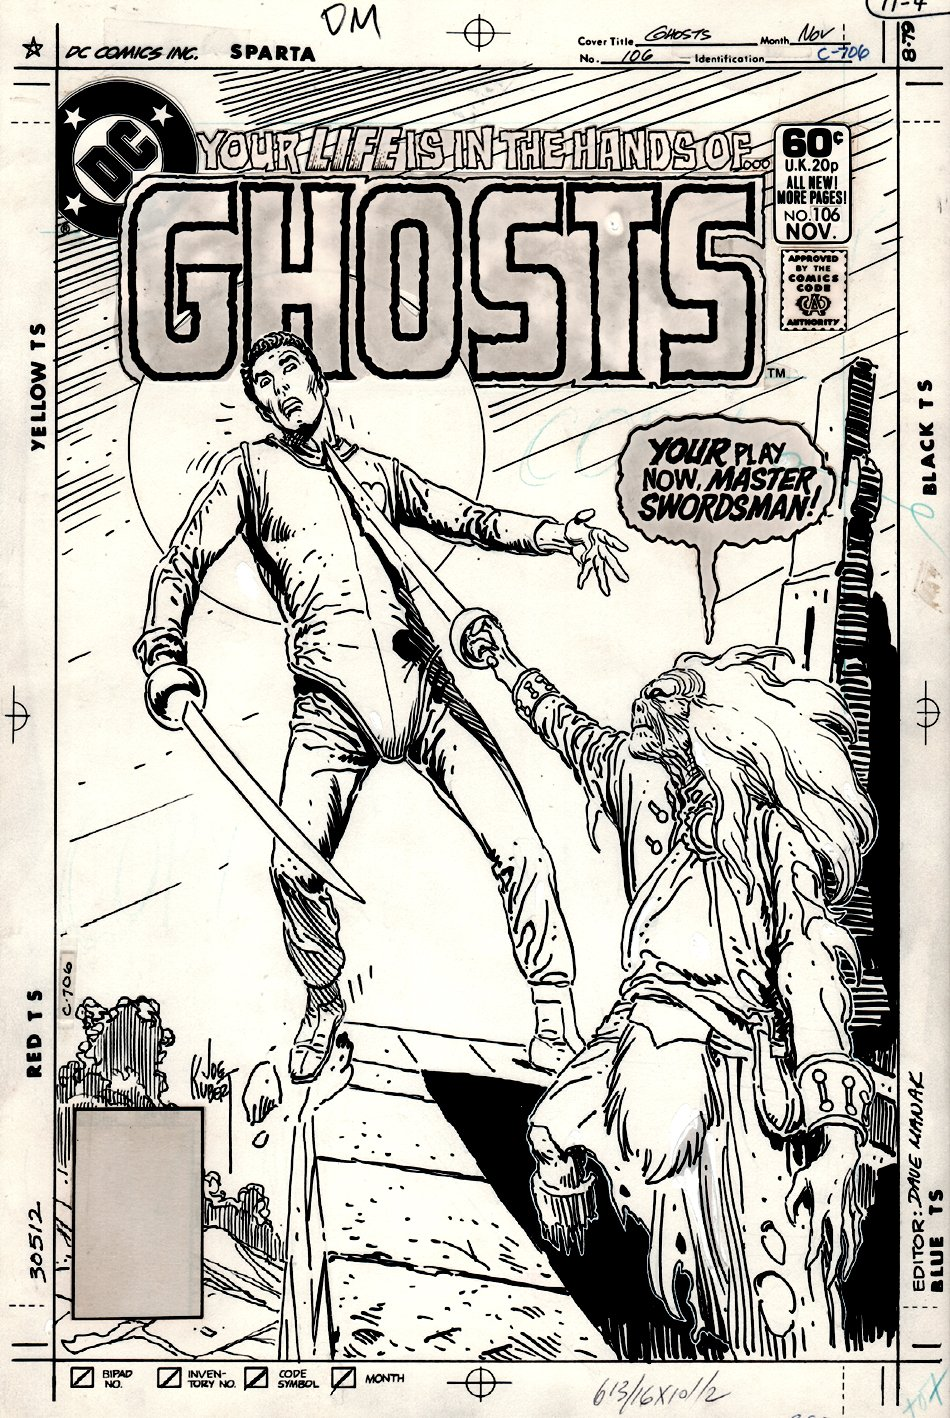 Ghosts #106 Cover (1981)